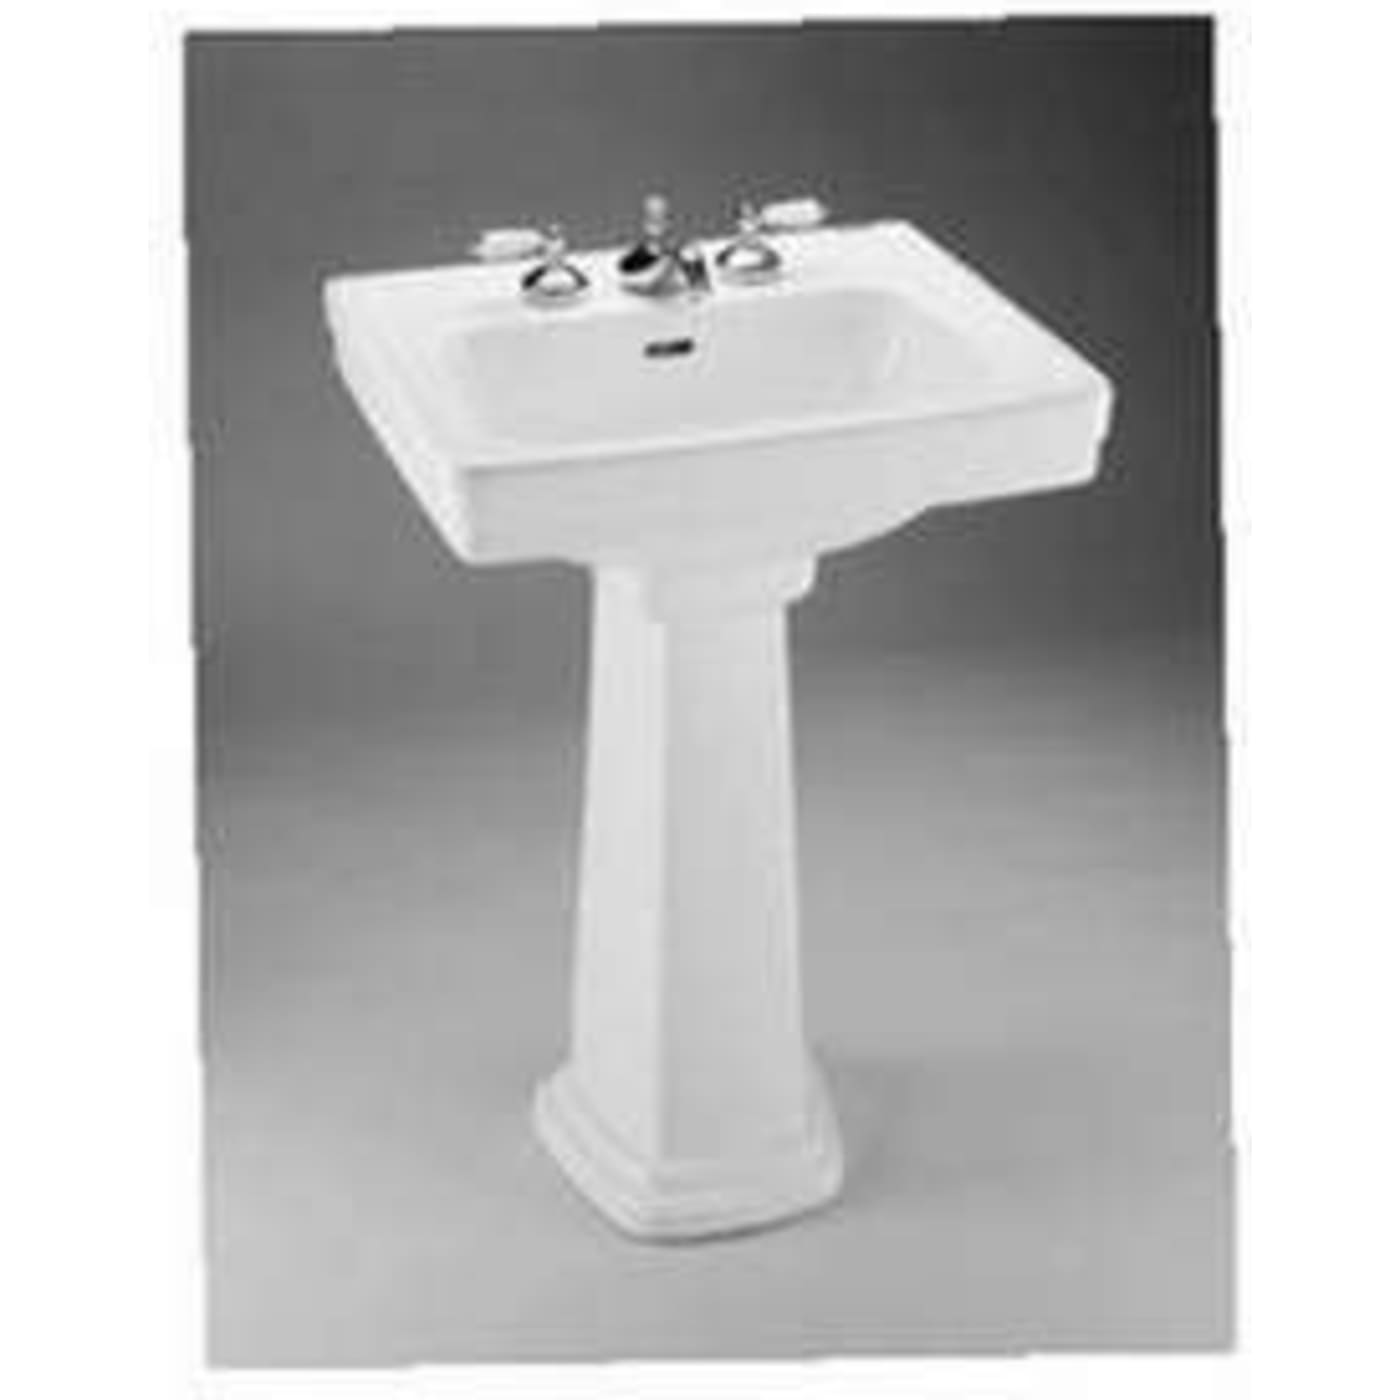 Toto Promenade Pedestal Vitreous China Bathroom Sink LPT532.8N#01 ...